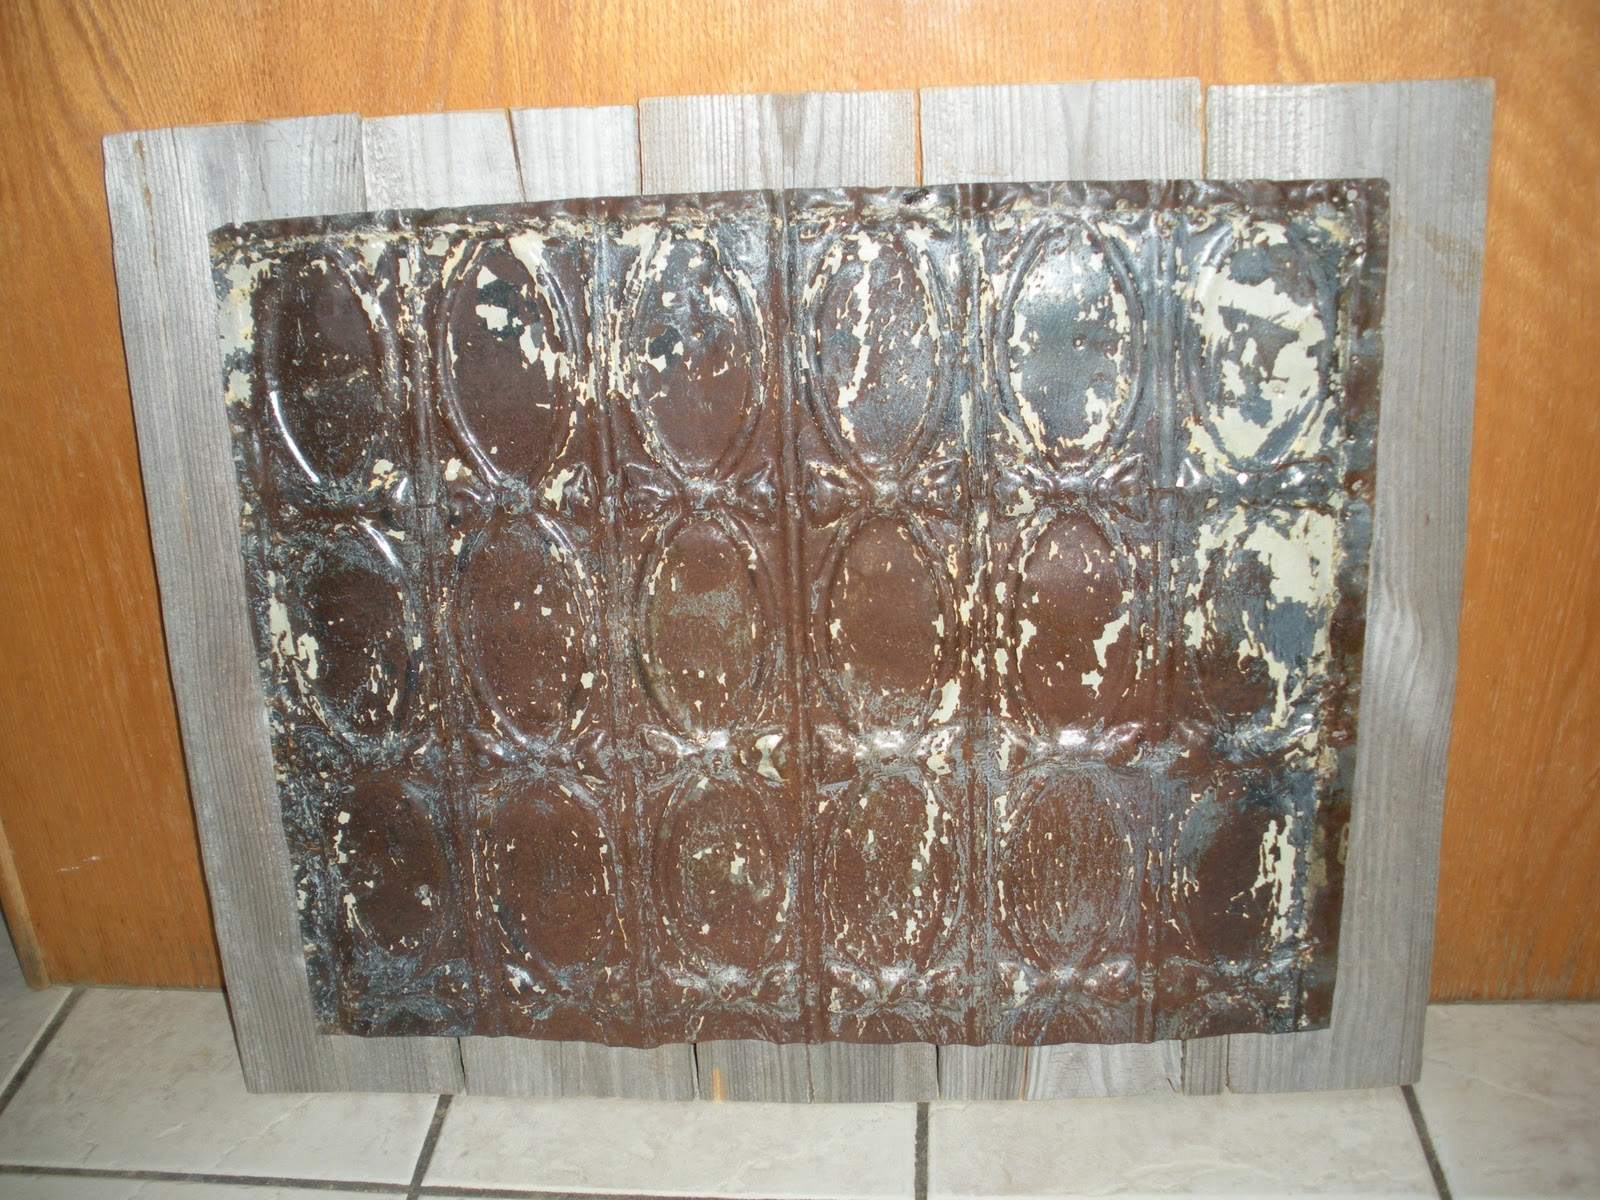 The JUNKtion: Repurposing A Ceiling Tile For Home Decor